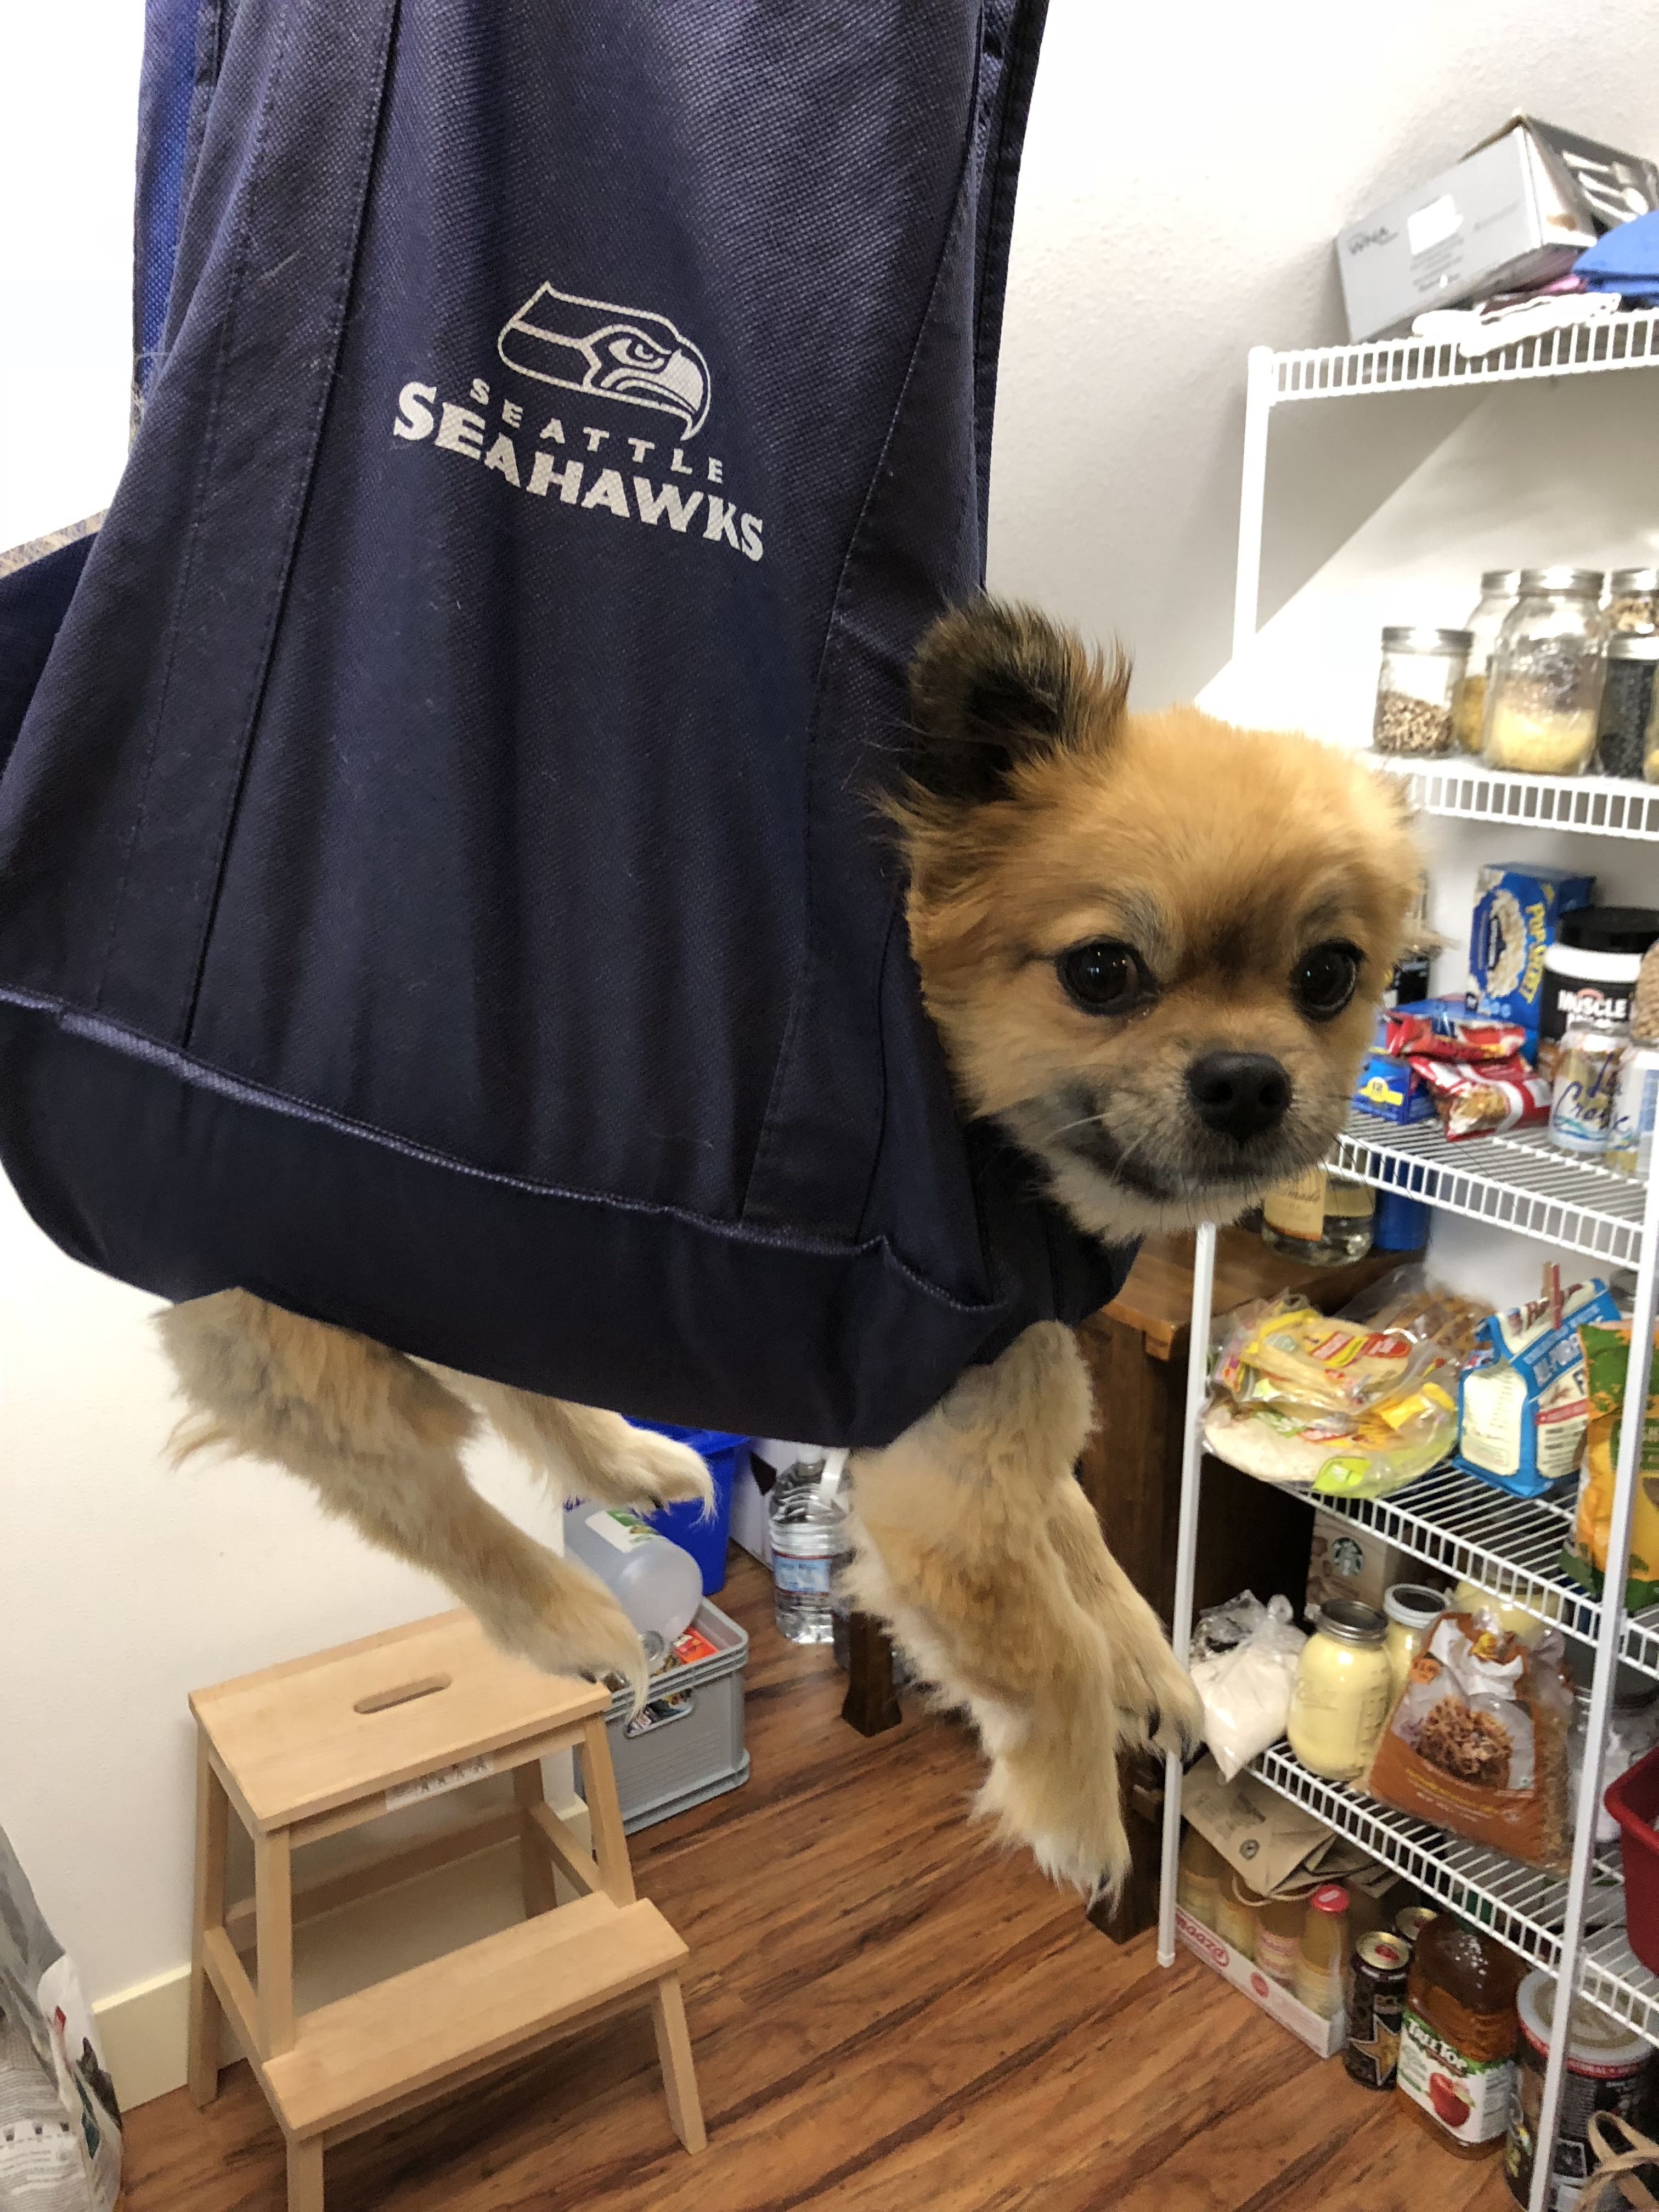 Dog Nail Trim Hack Made This Out Of A Fabric Grocery Bag My Pup